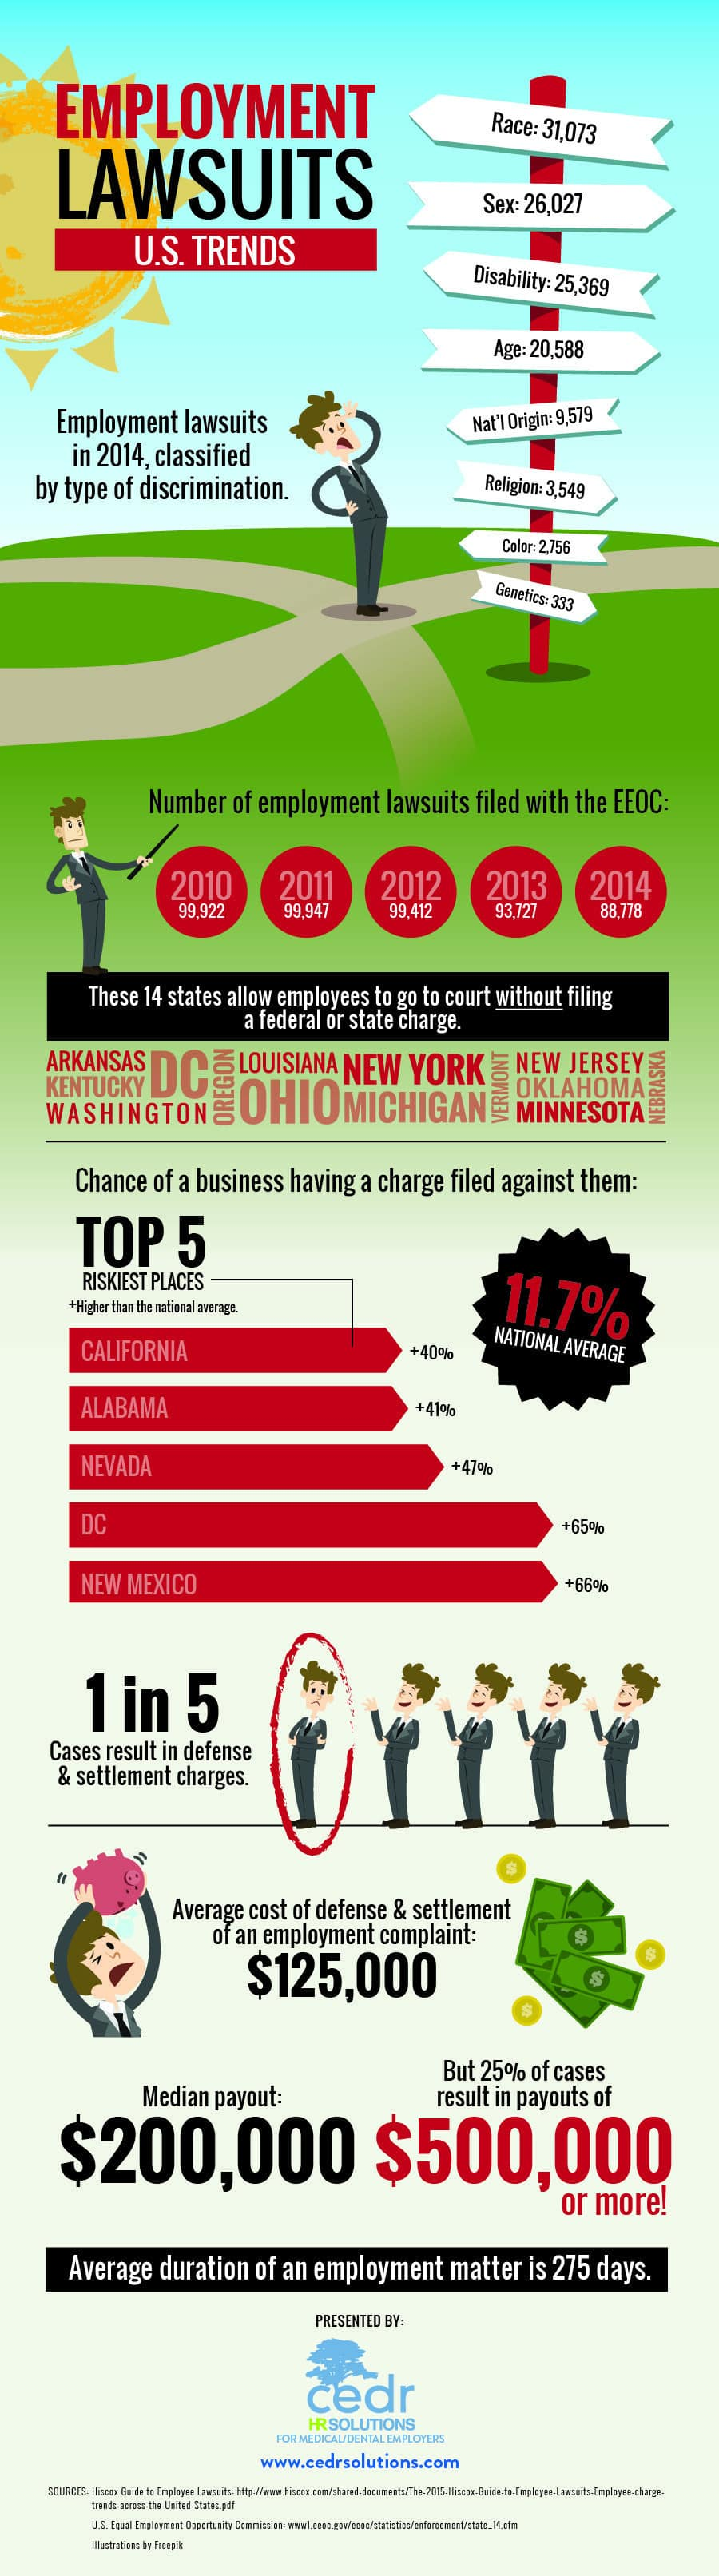 U.S. Trends in Employment Lawsuits